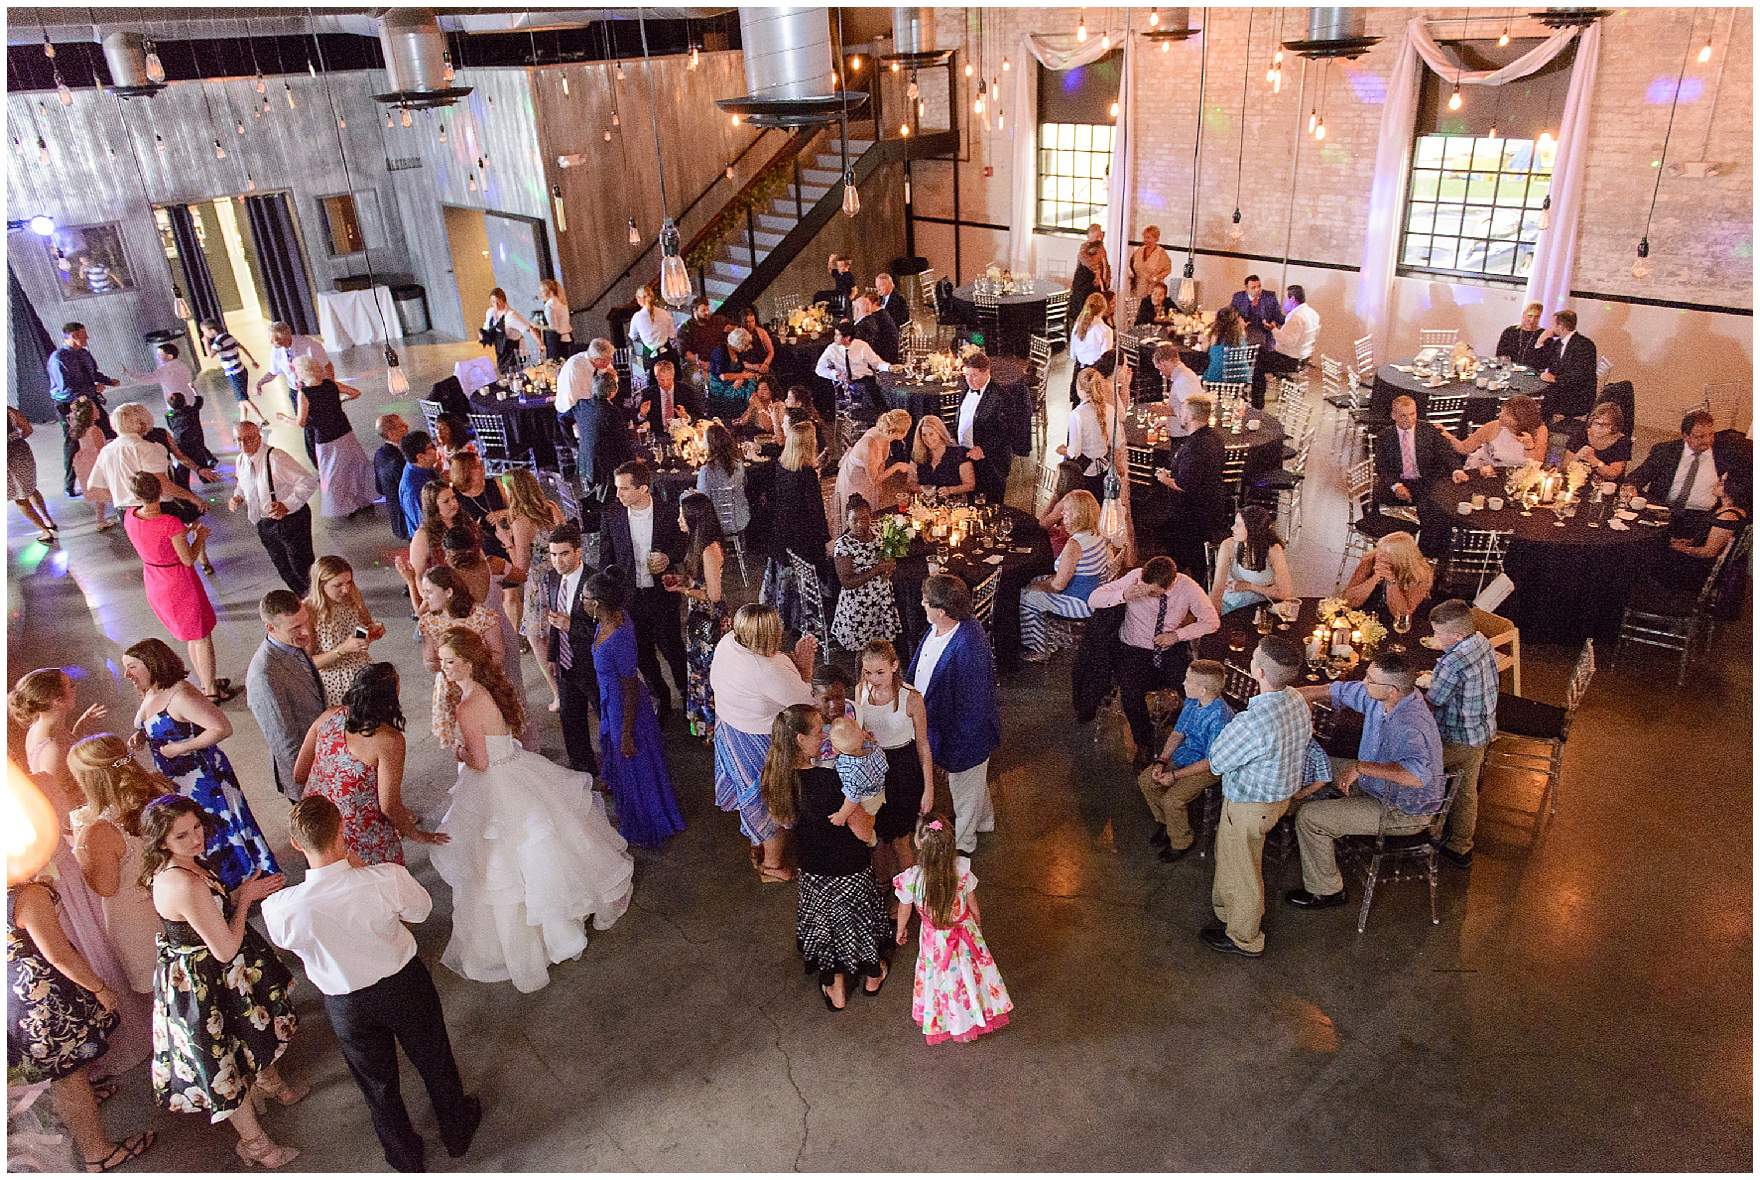 Guests mingle during a wedding reception at The Brick in South Bend, following a University of Notre Dame wedding.